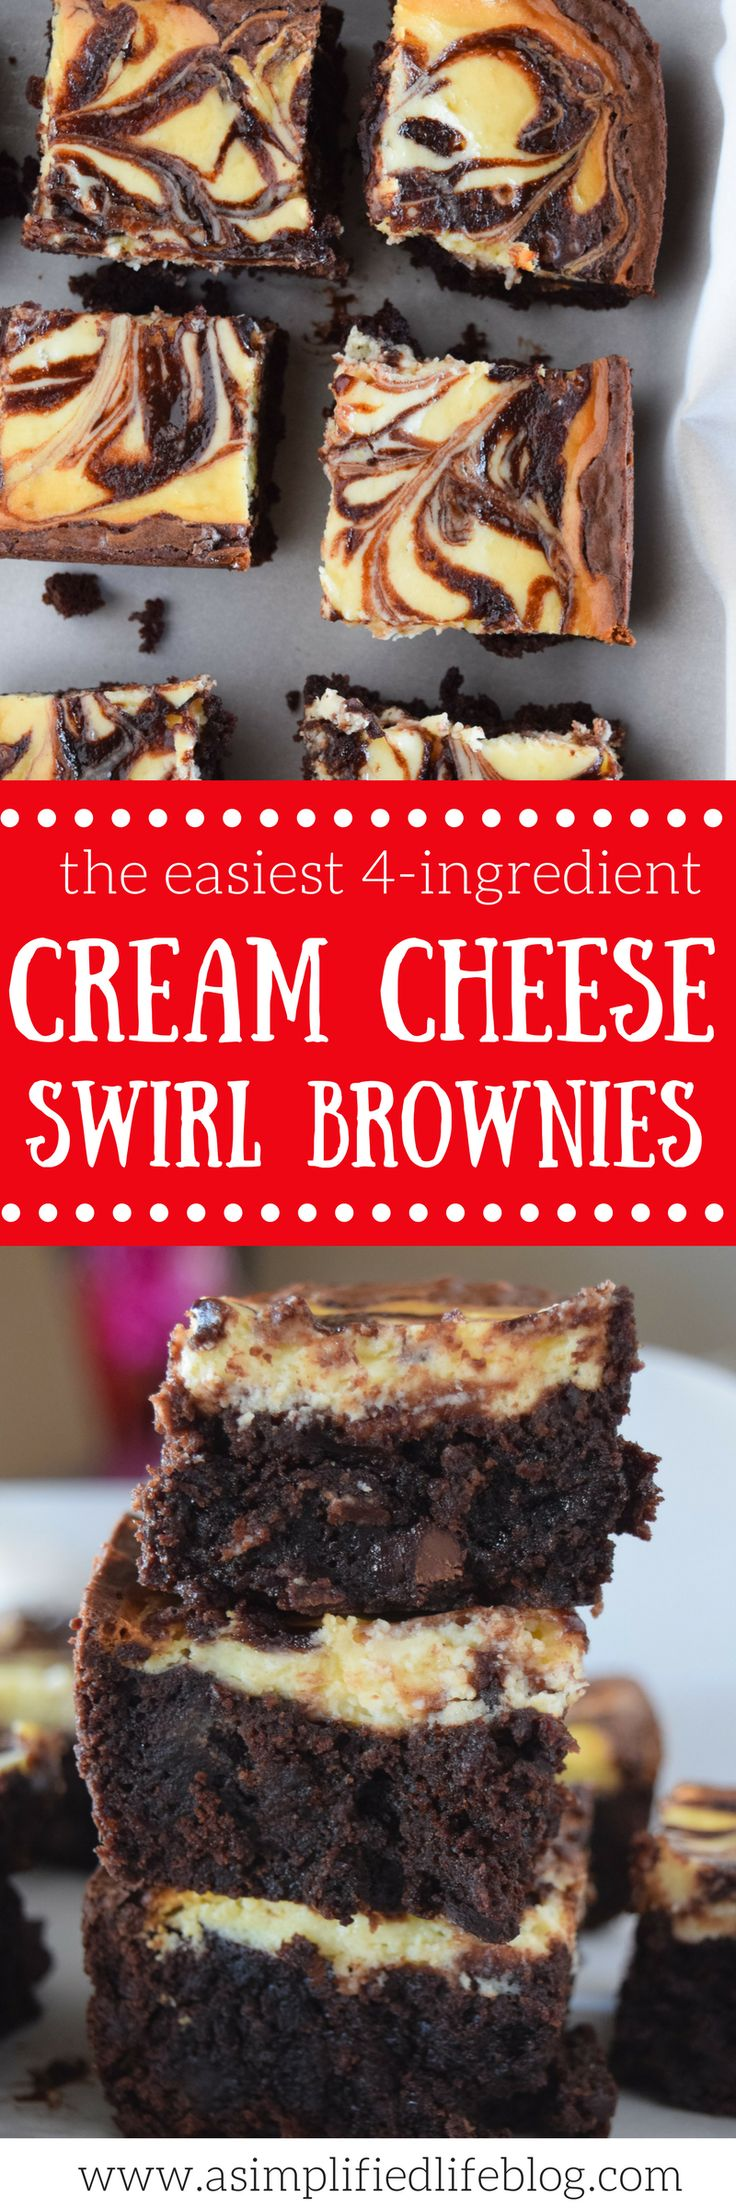 Cream Cheese Swirl Brownies | Posted By: DebbieNet.com